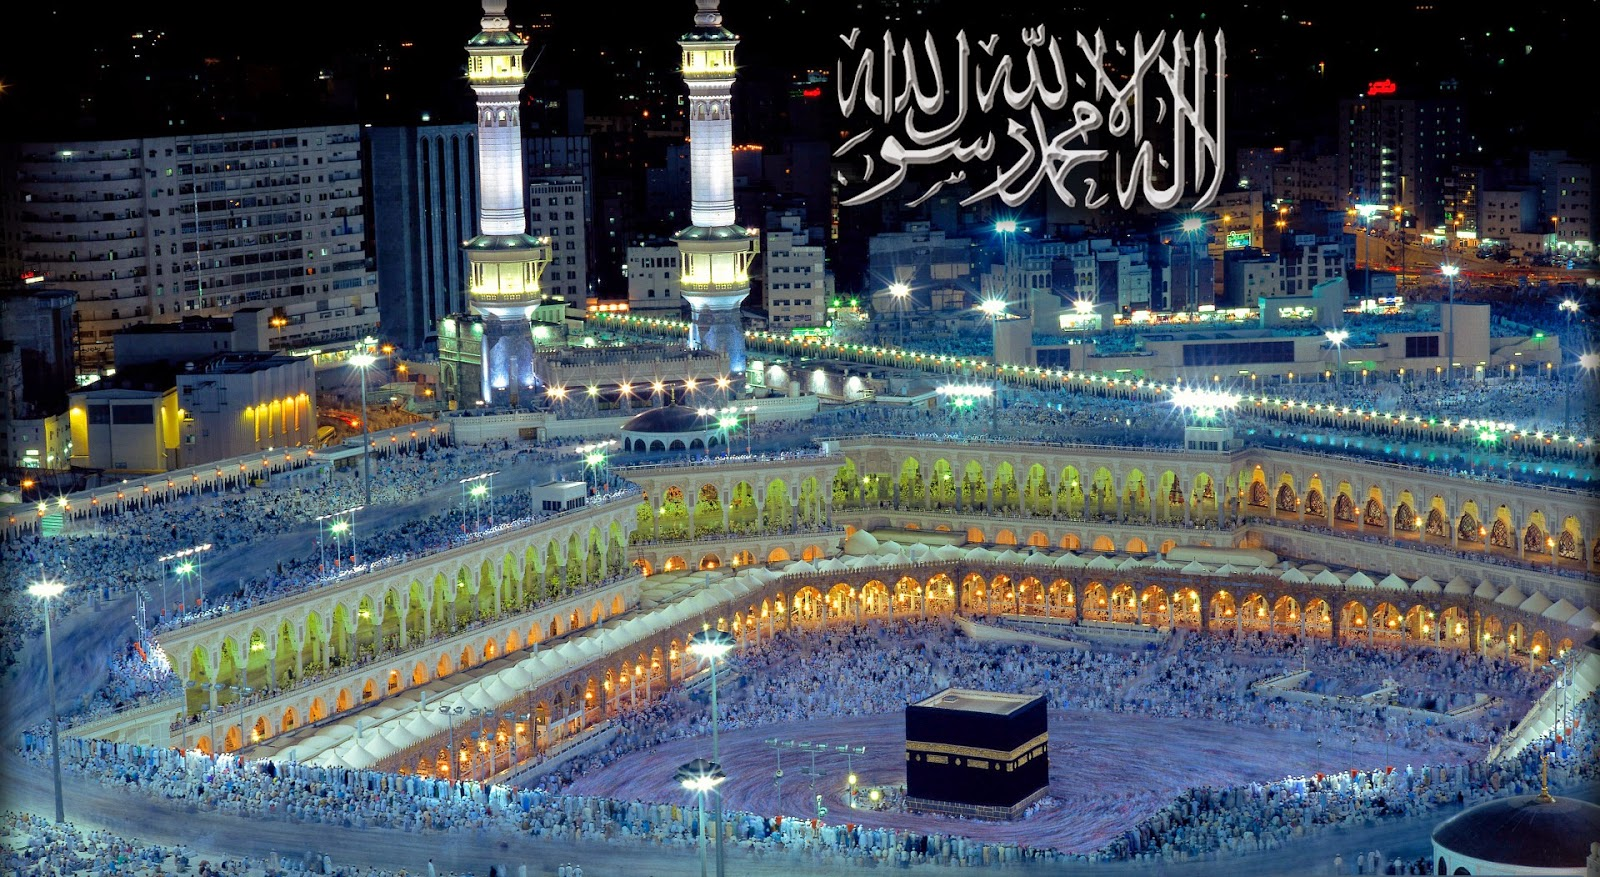 khana kaba wallpapers hd download free islamic book